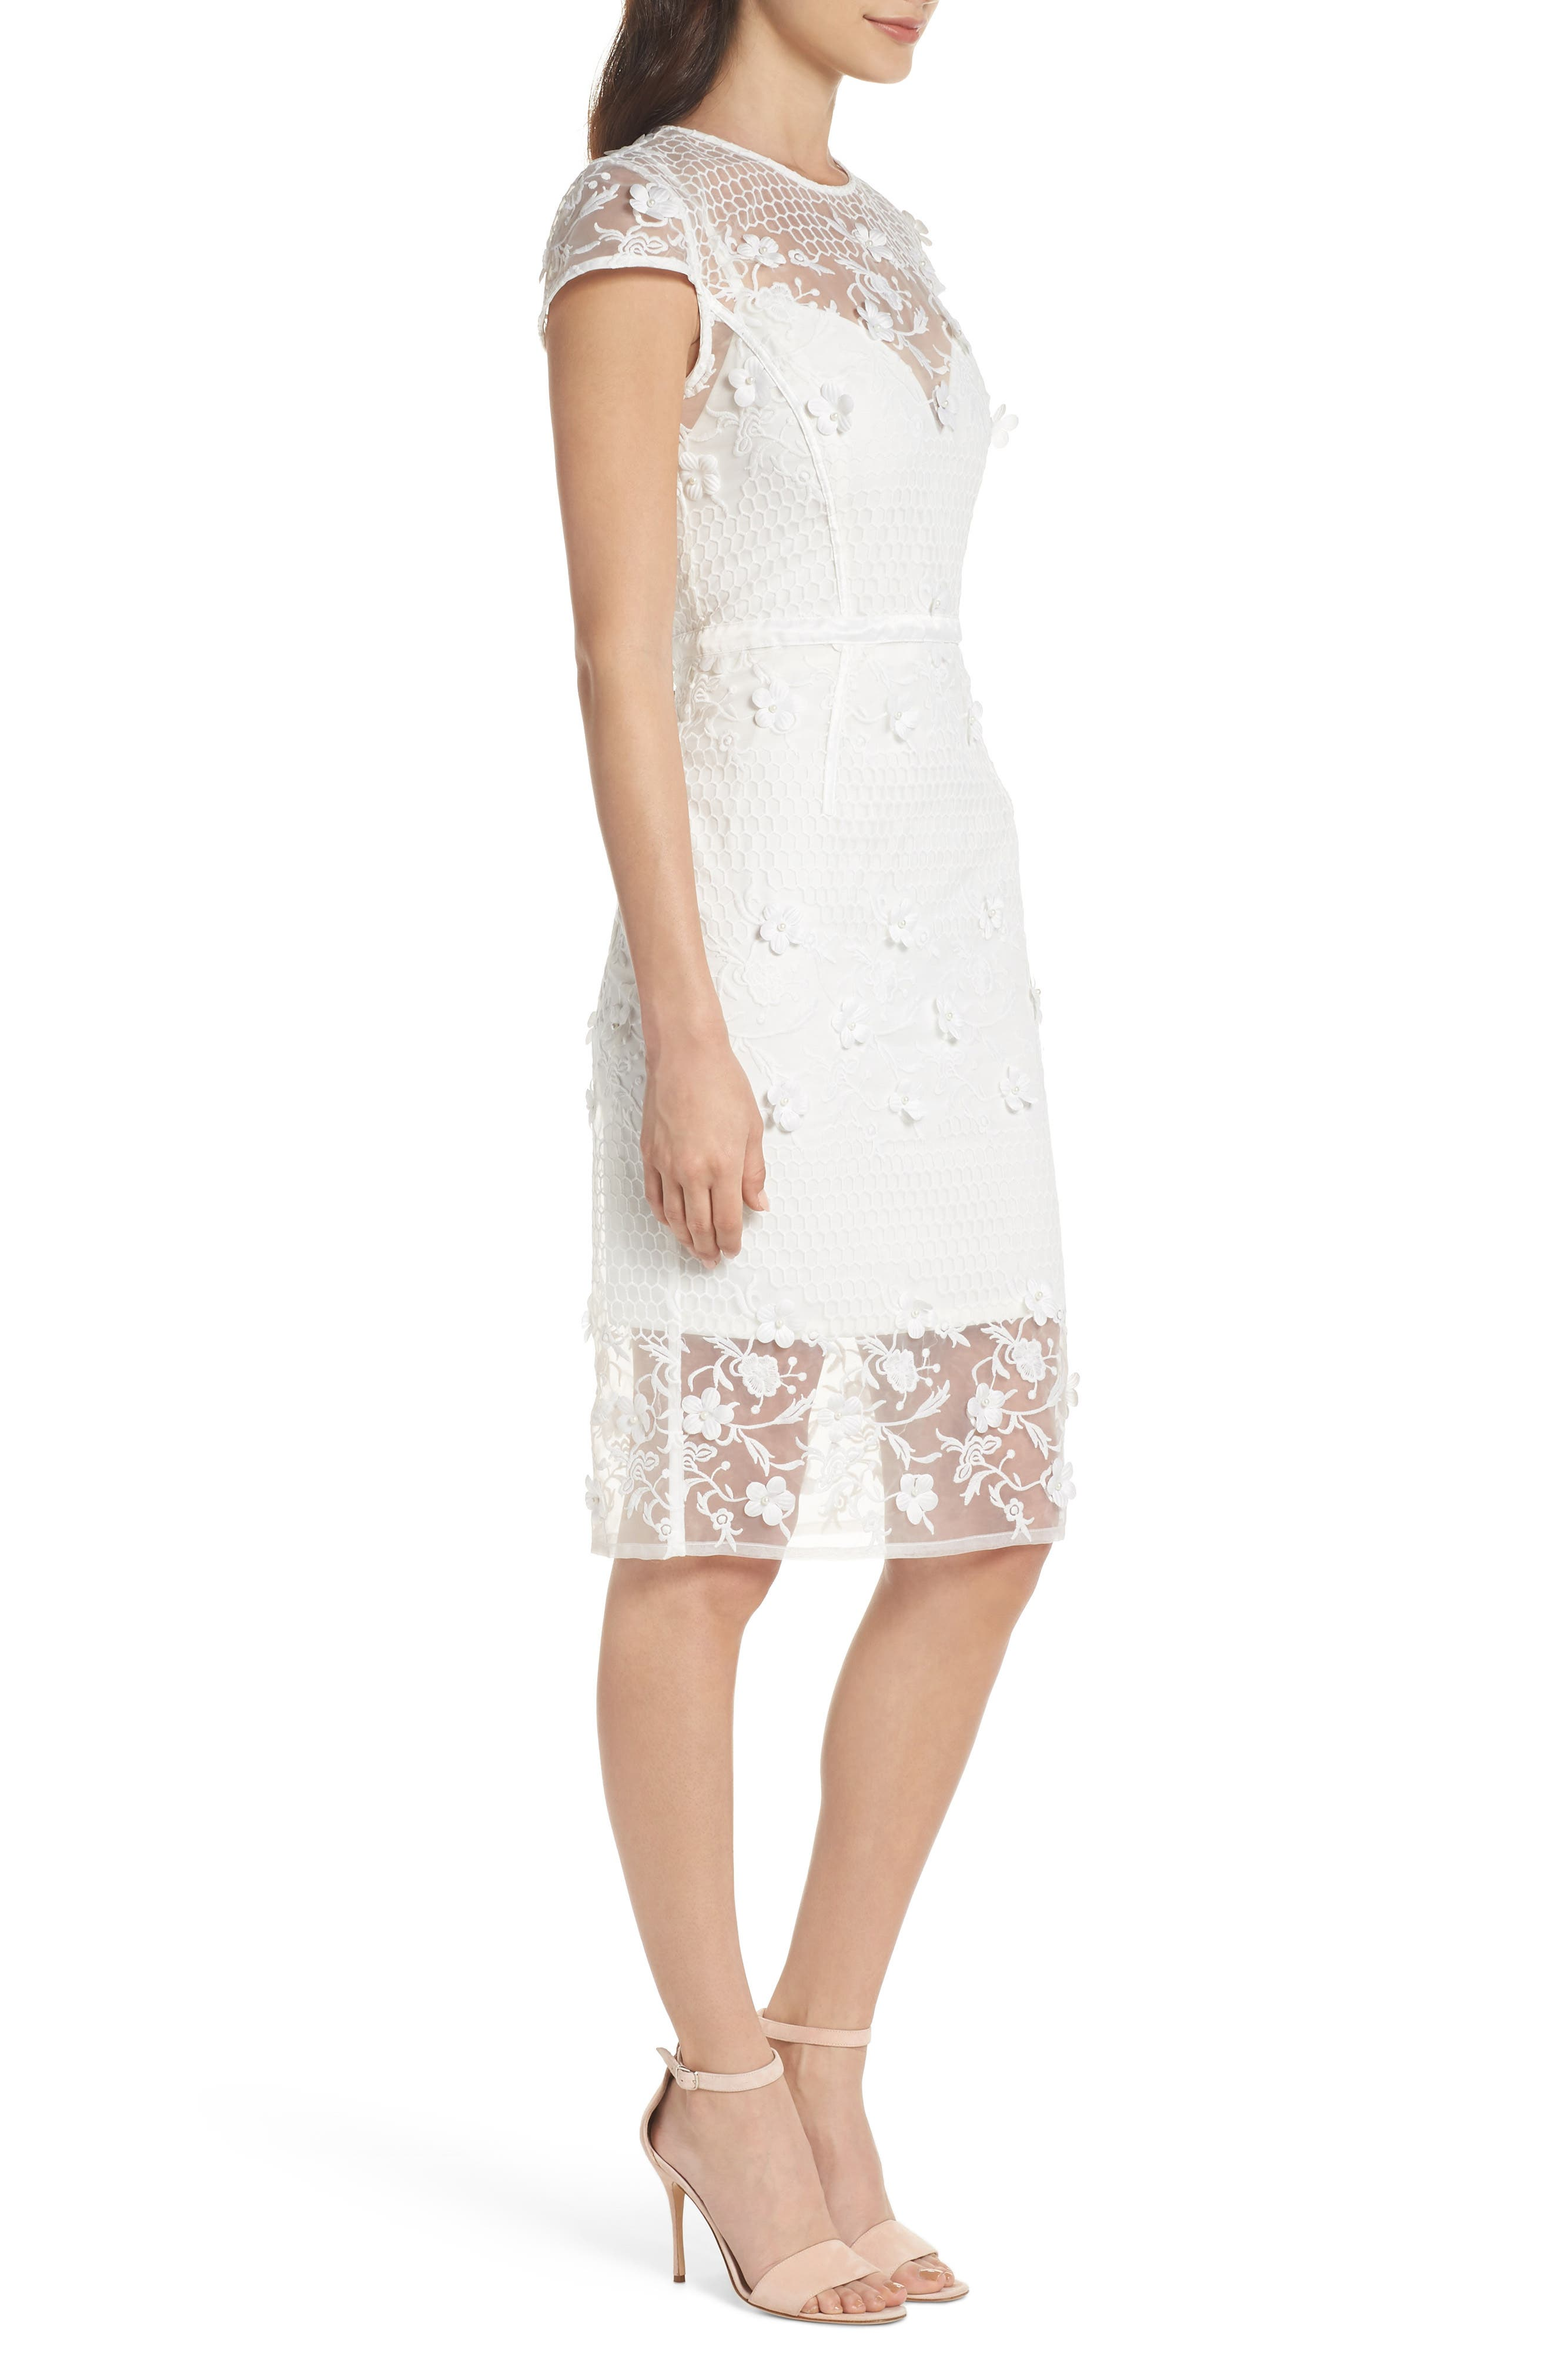 Osa Embroidered Cap Sleeve Organza Dress,                             Alternate thumbnail 3, color,                             White